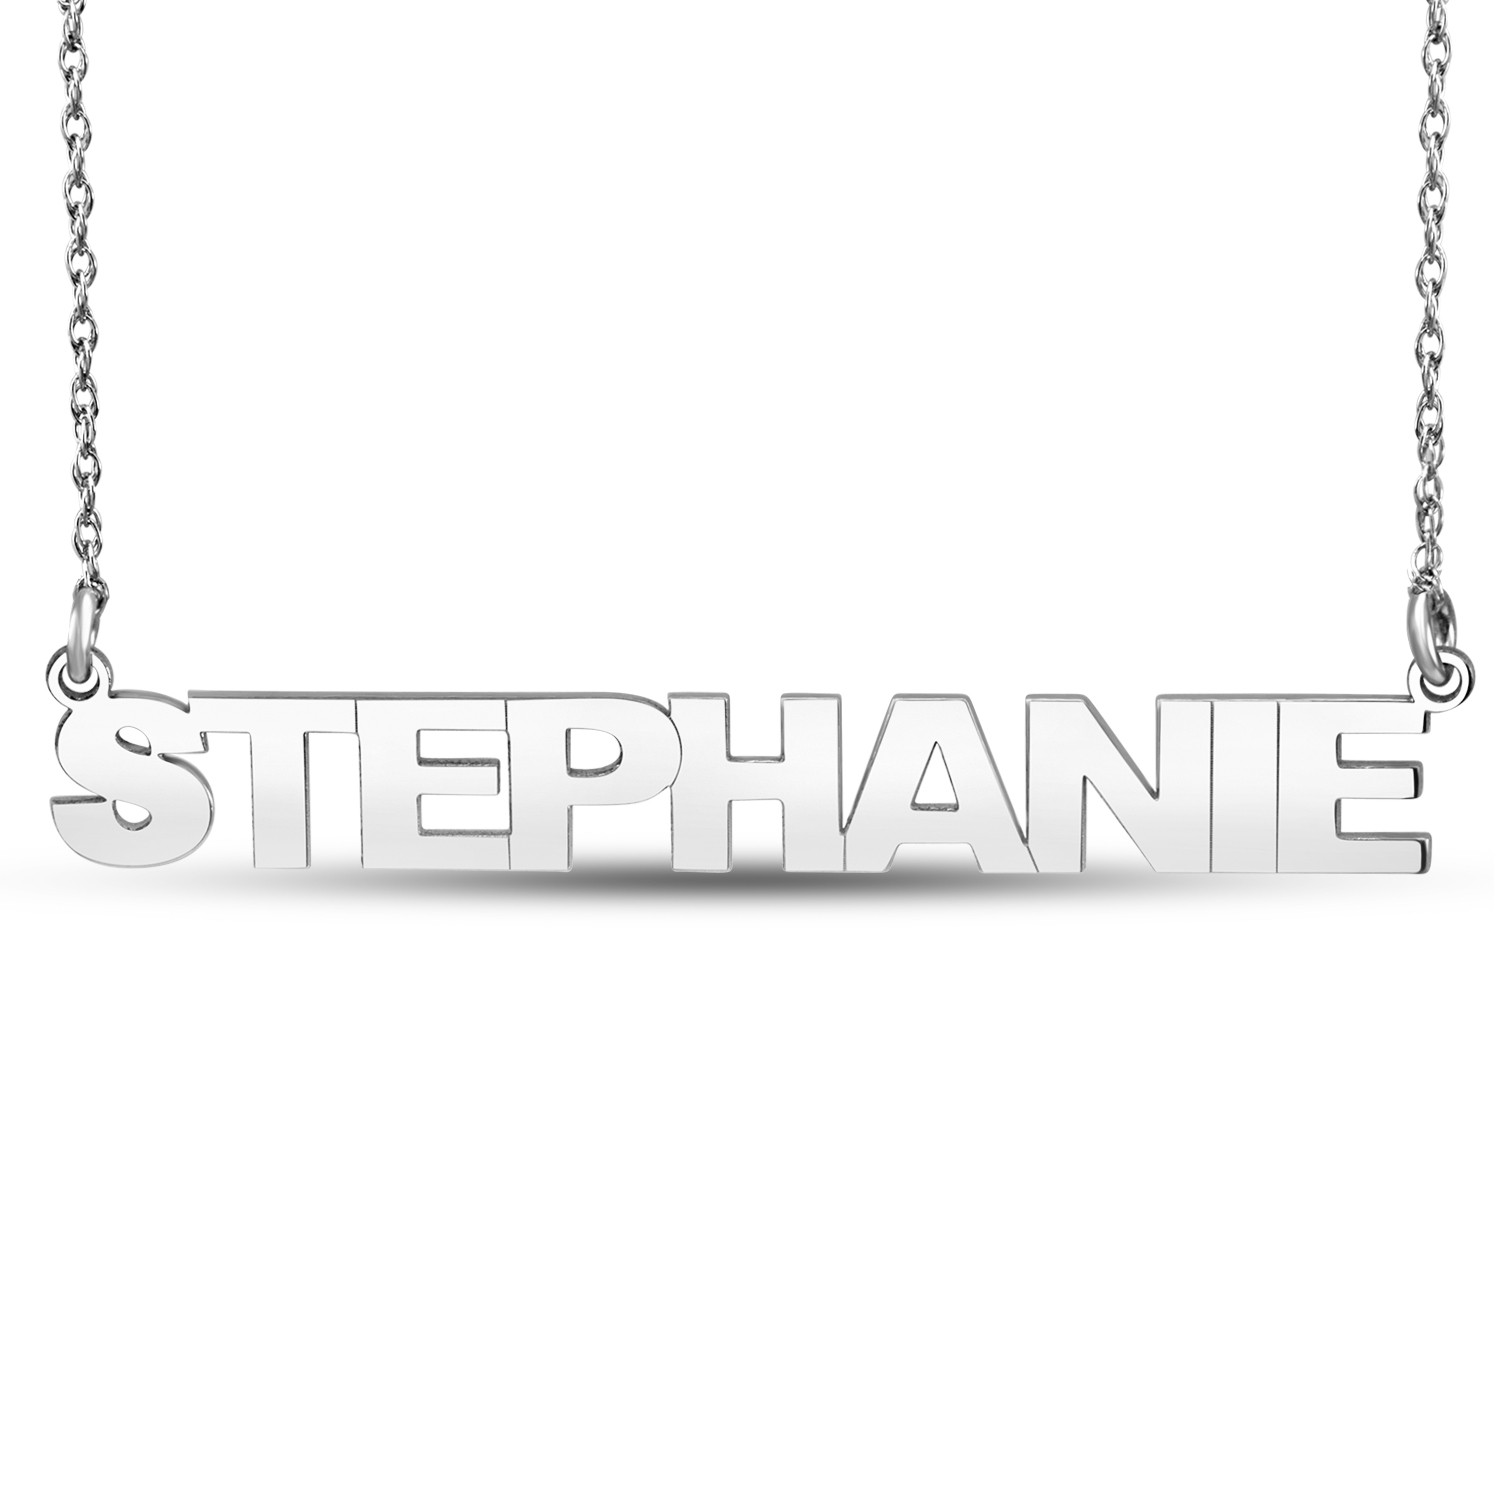 HI Polish Name Pers Necklace